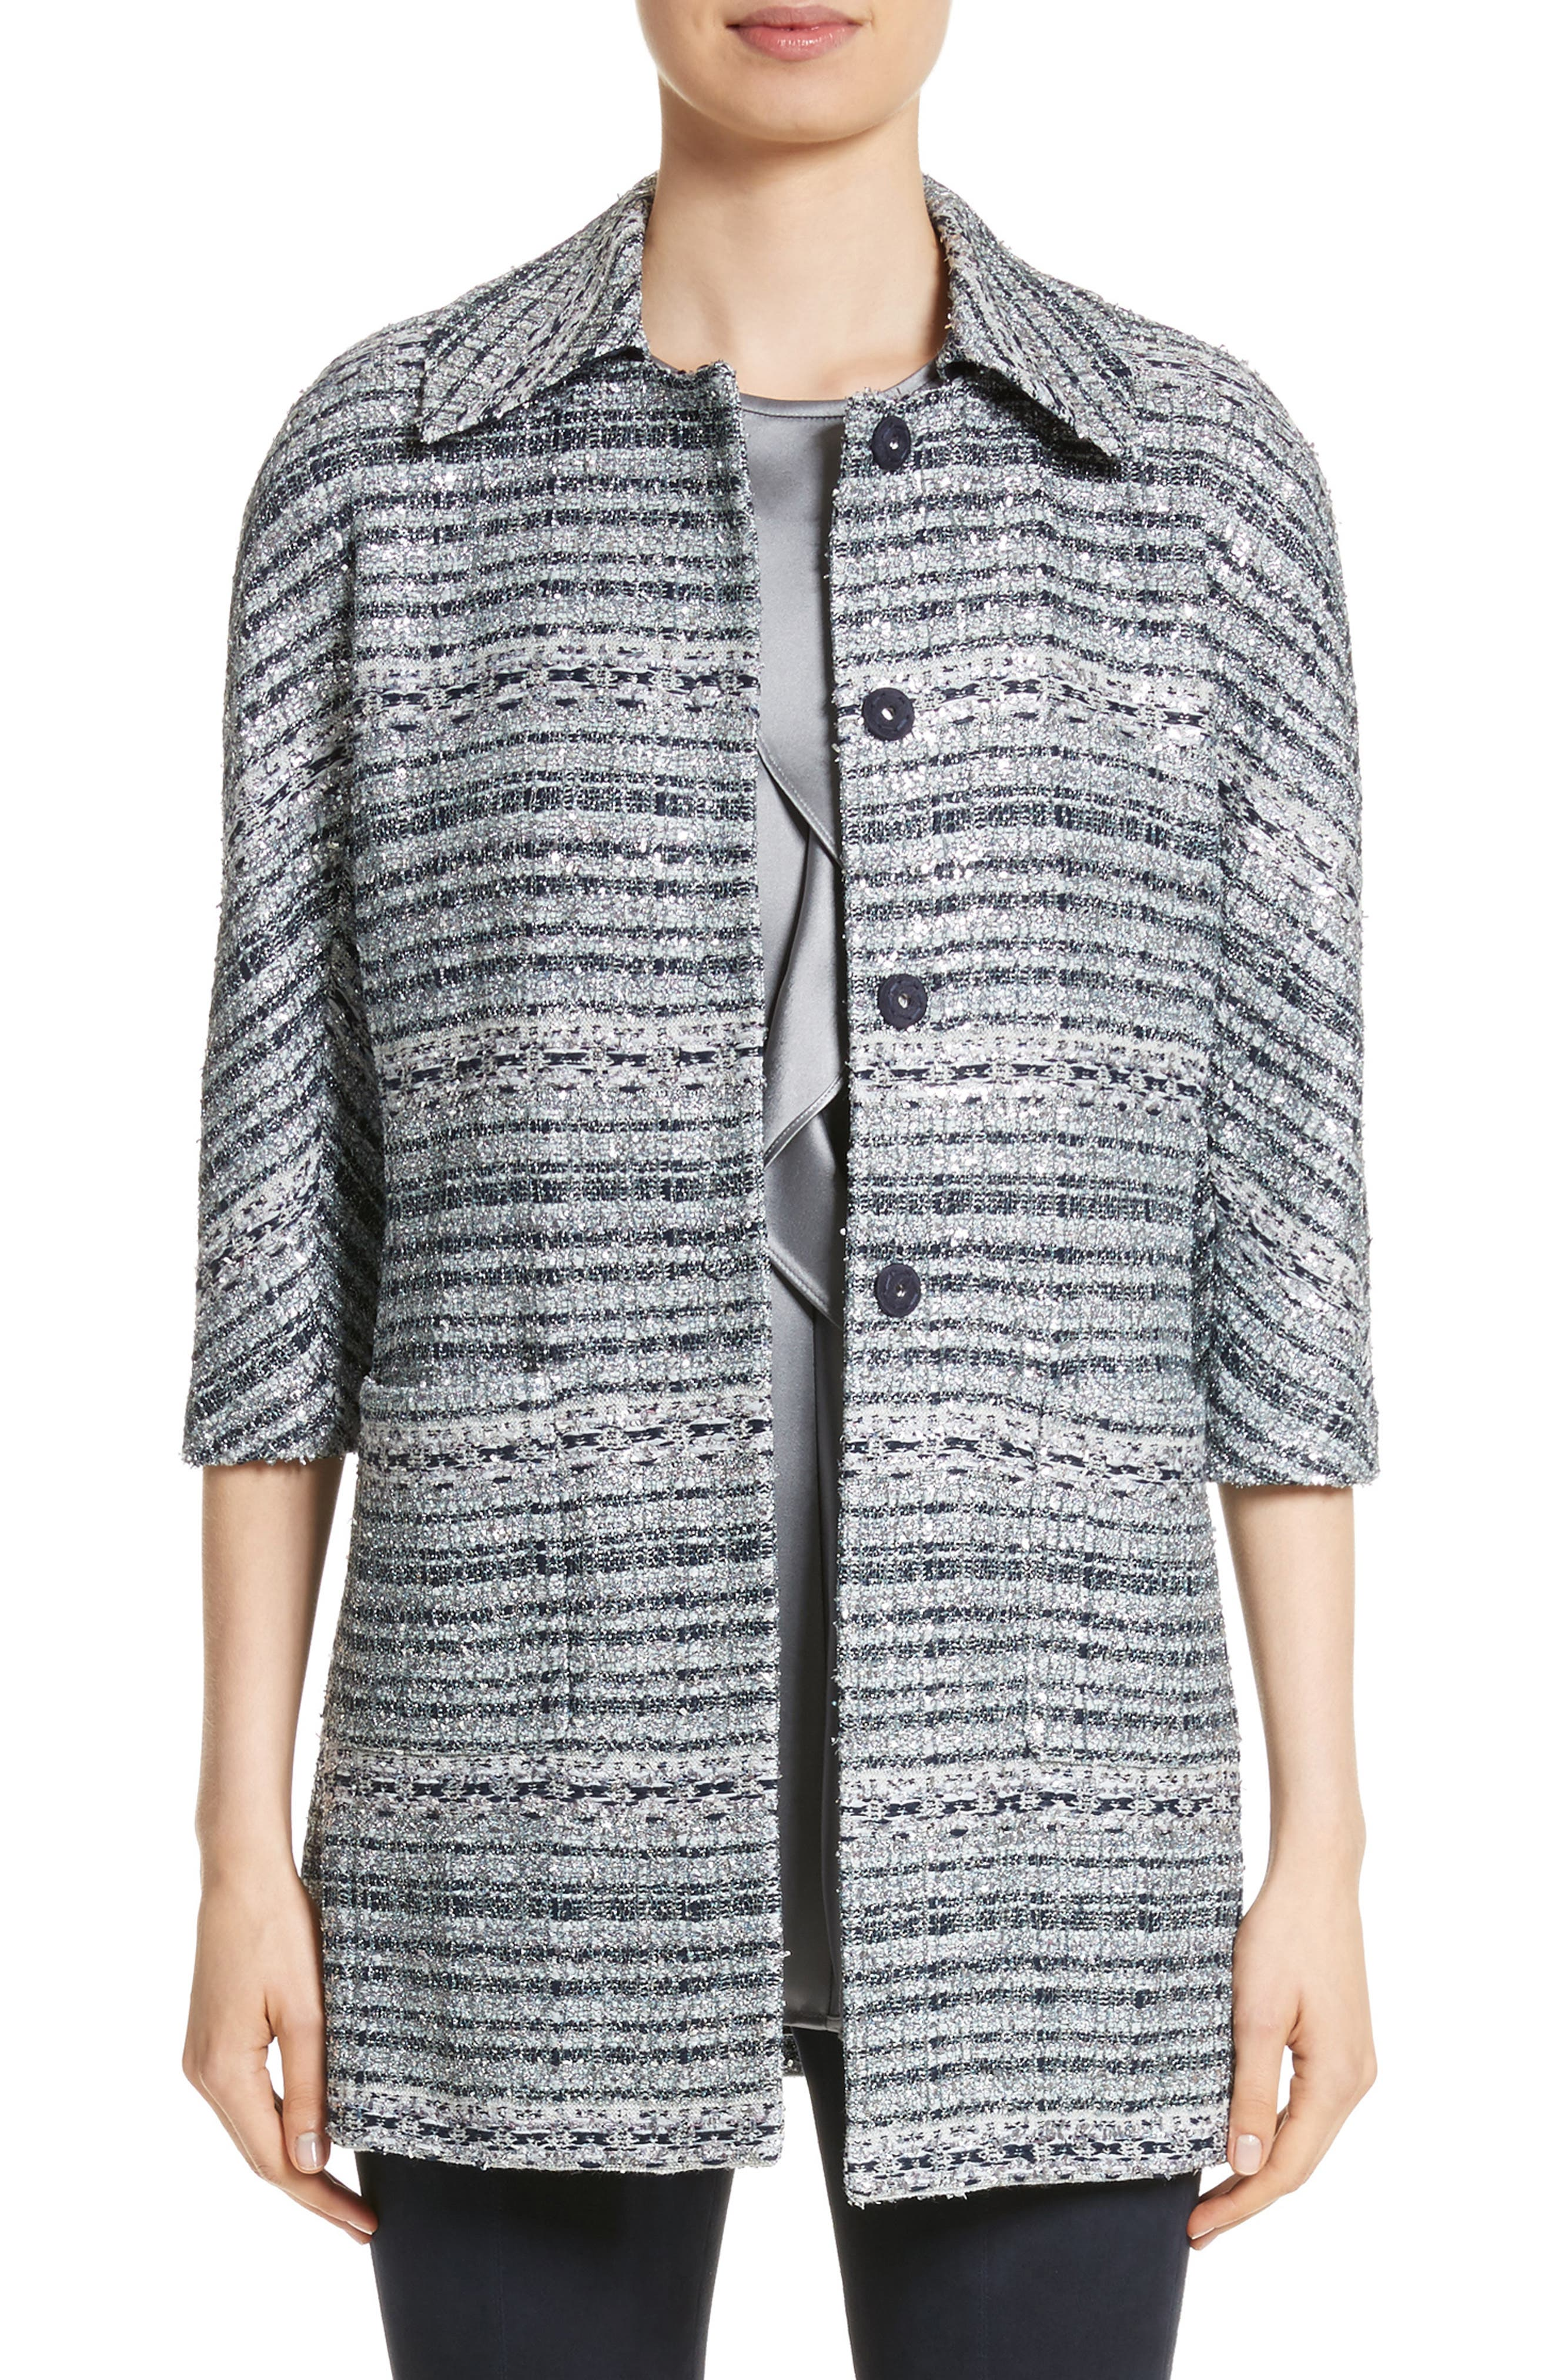 Alternate Image 1 Selected - St. John Collection Lacquered Metallic Ribbon Knit Jacket